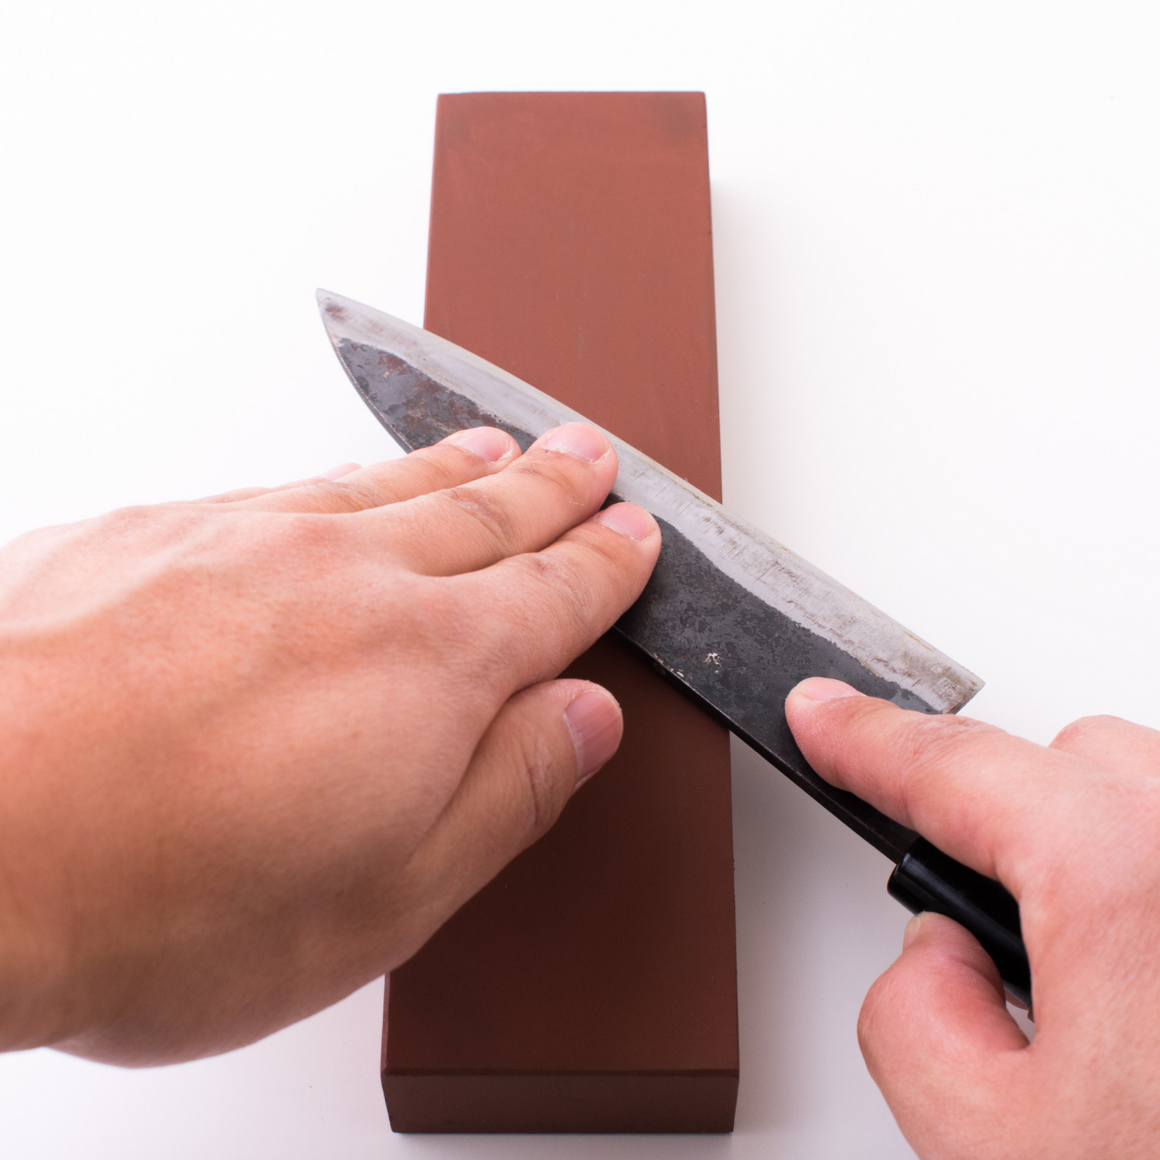 Knife Sharpening Tutorial | Sat 18 Jan | 11.00 to 13.30